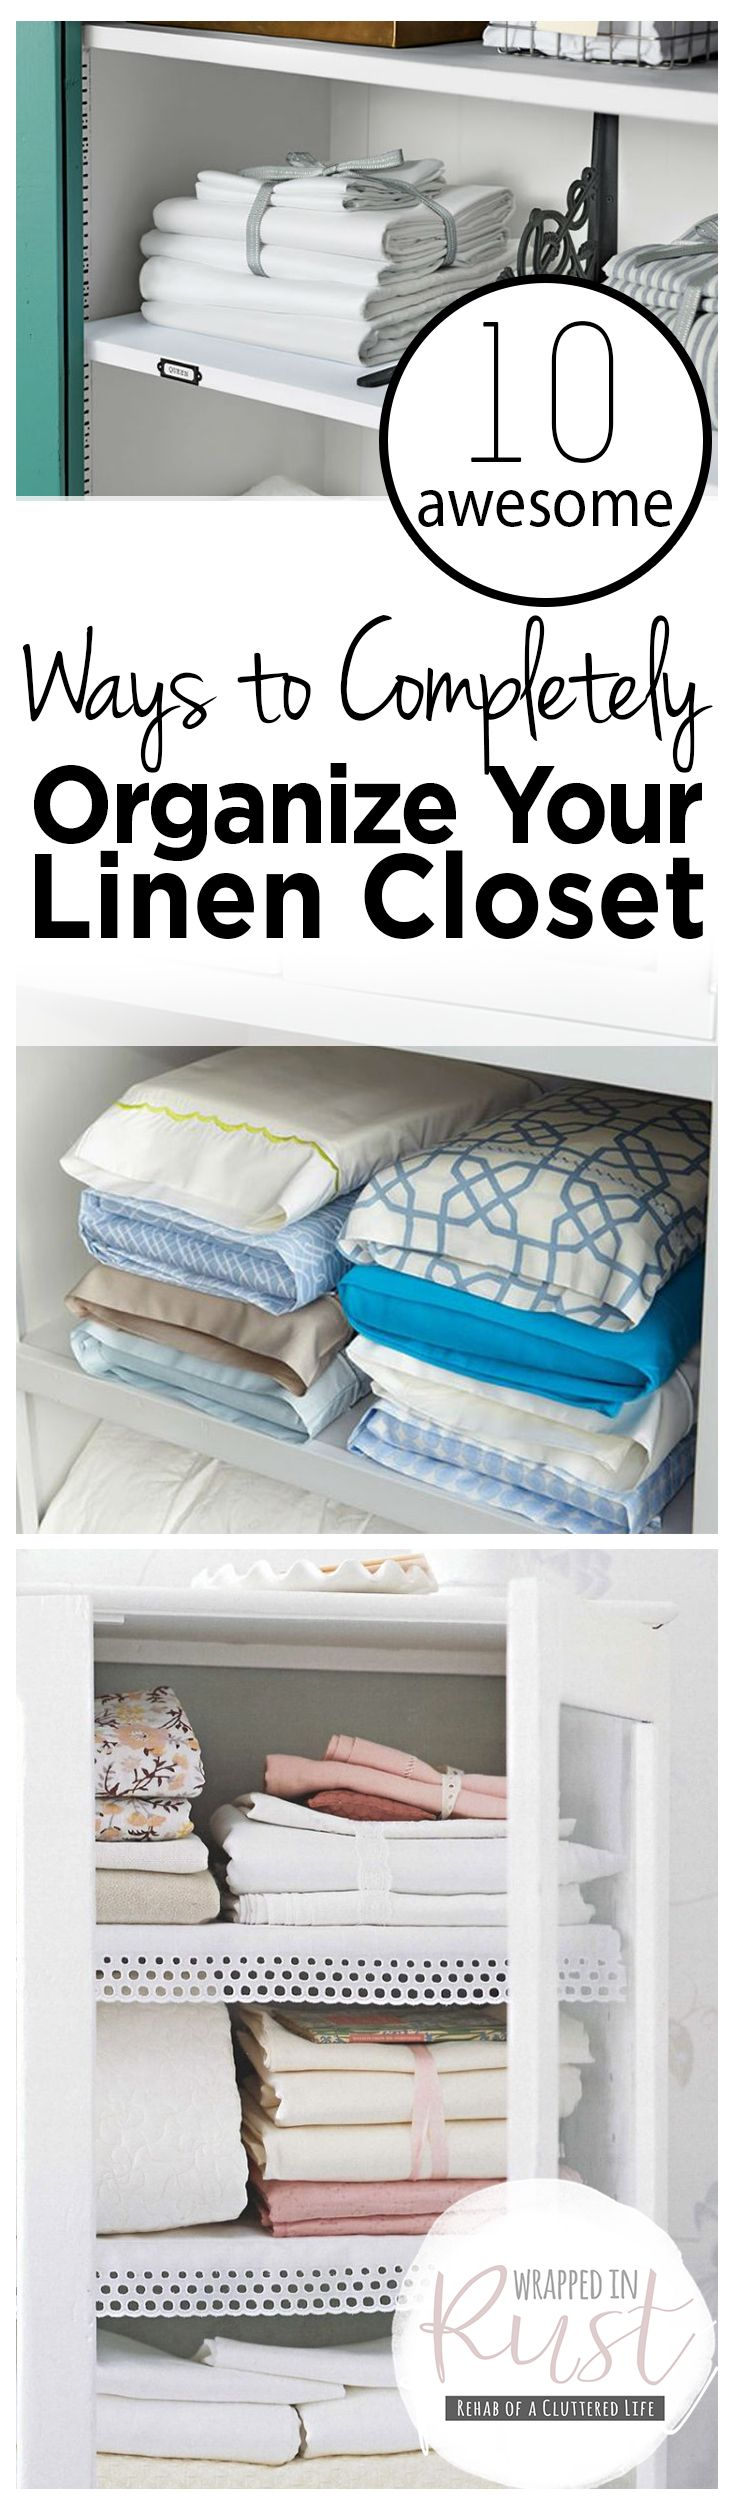 490 best helpful tips images on pinterest cleaning hacks future